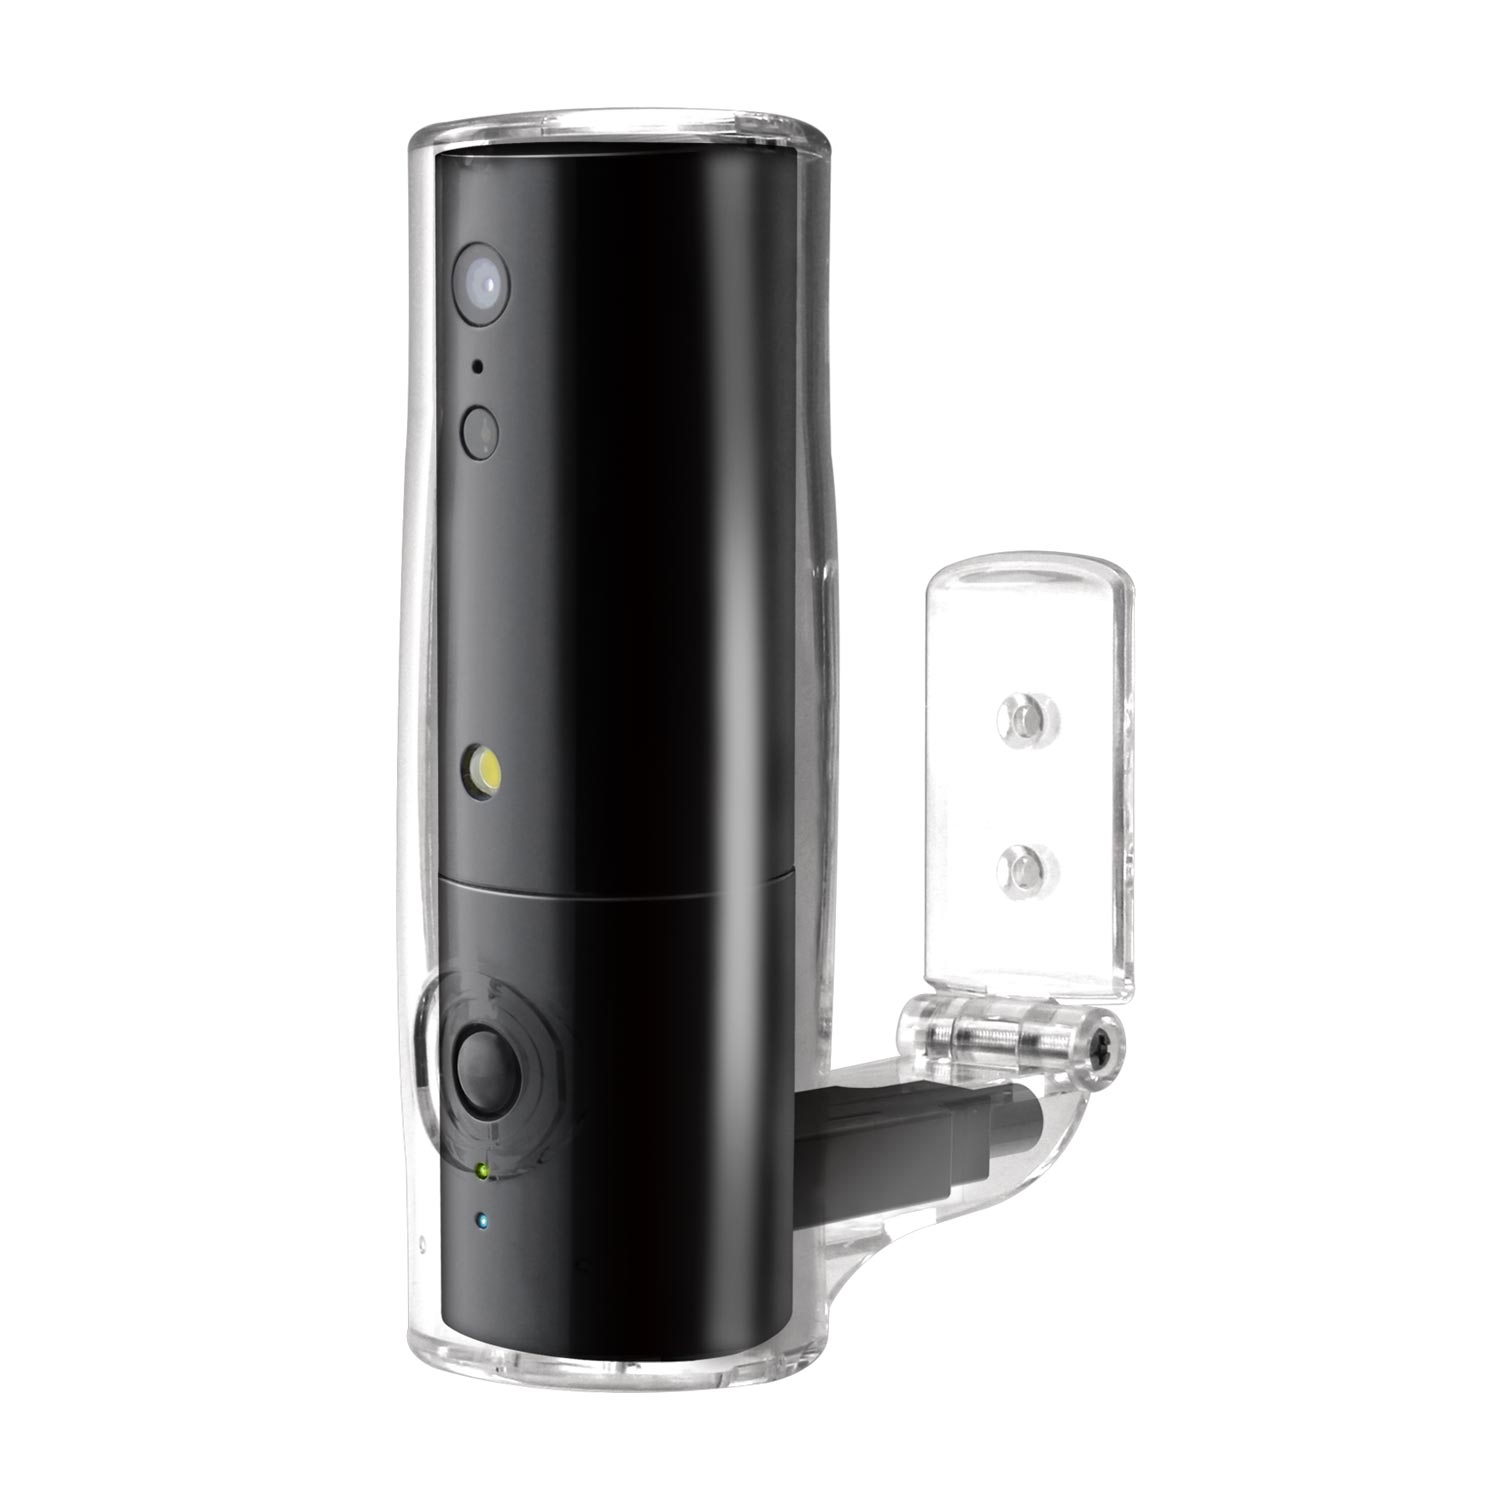 Amaryllo Isensor Hd Patio Noir Cam 233 Ra Ip Amaryllo Sur